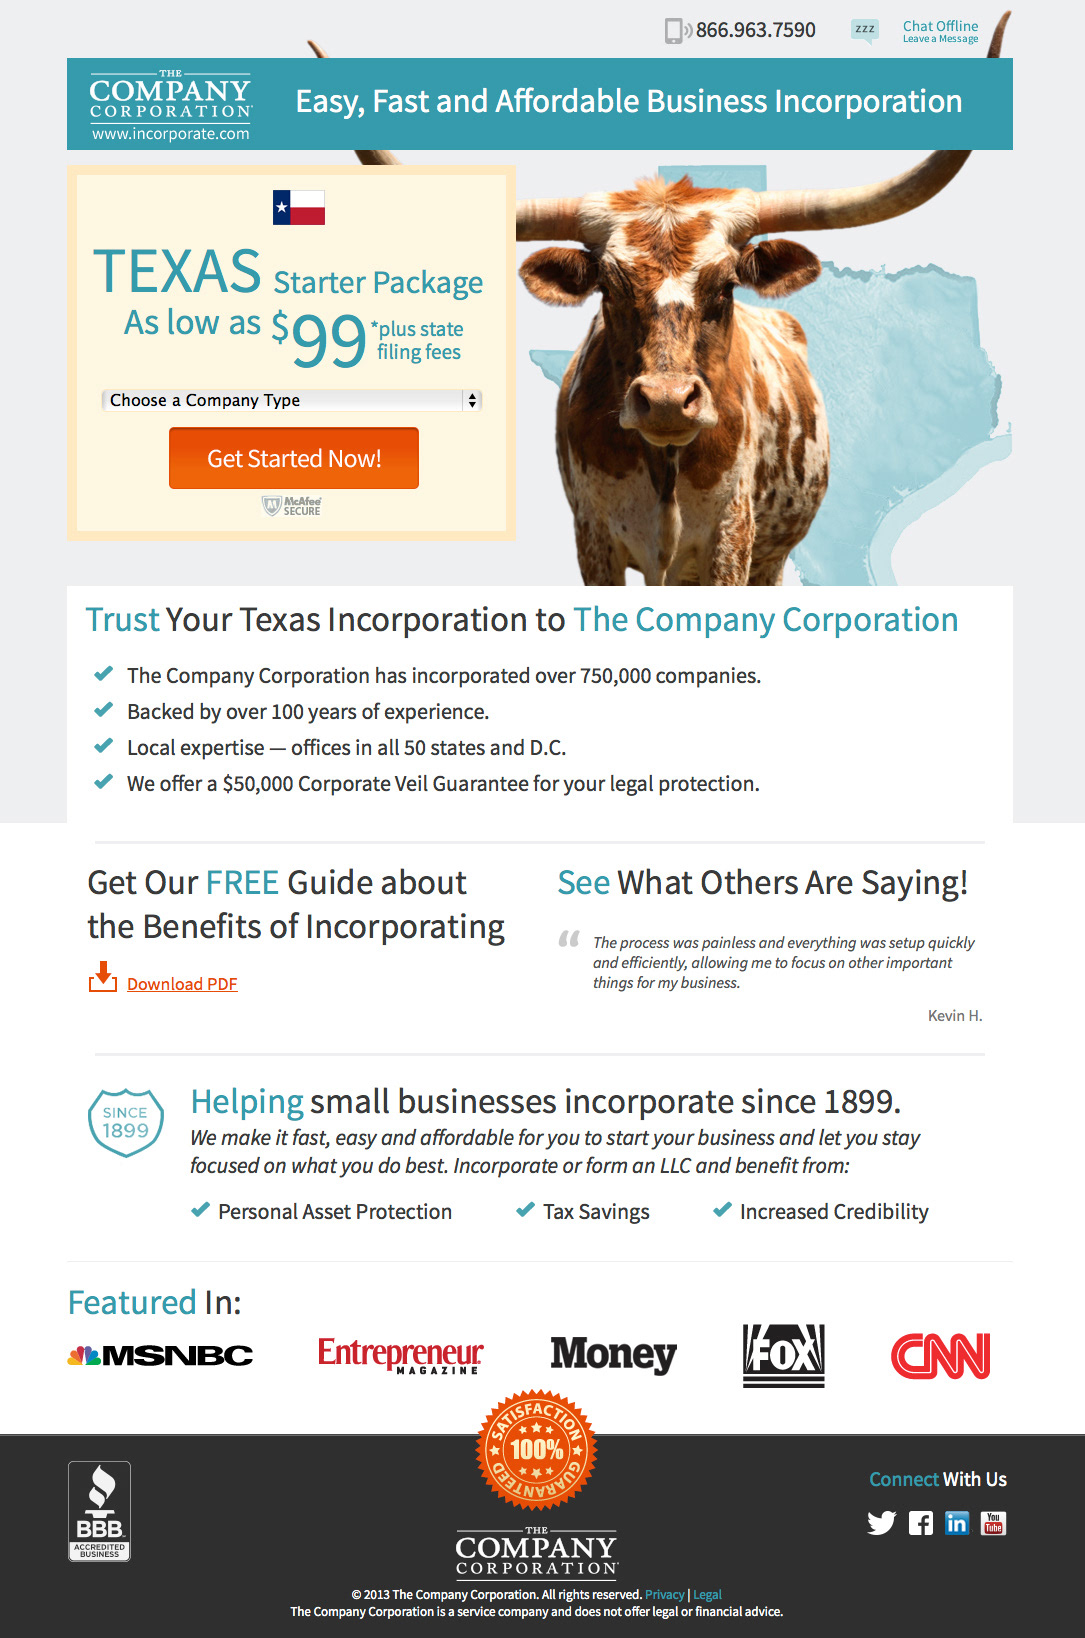 Getting The How To Incorporate In Texas To Work